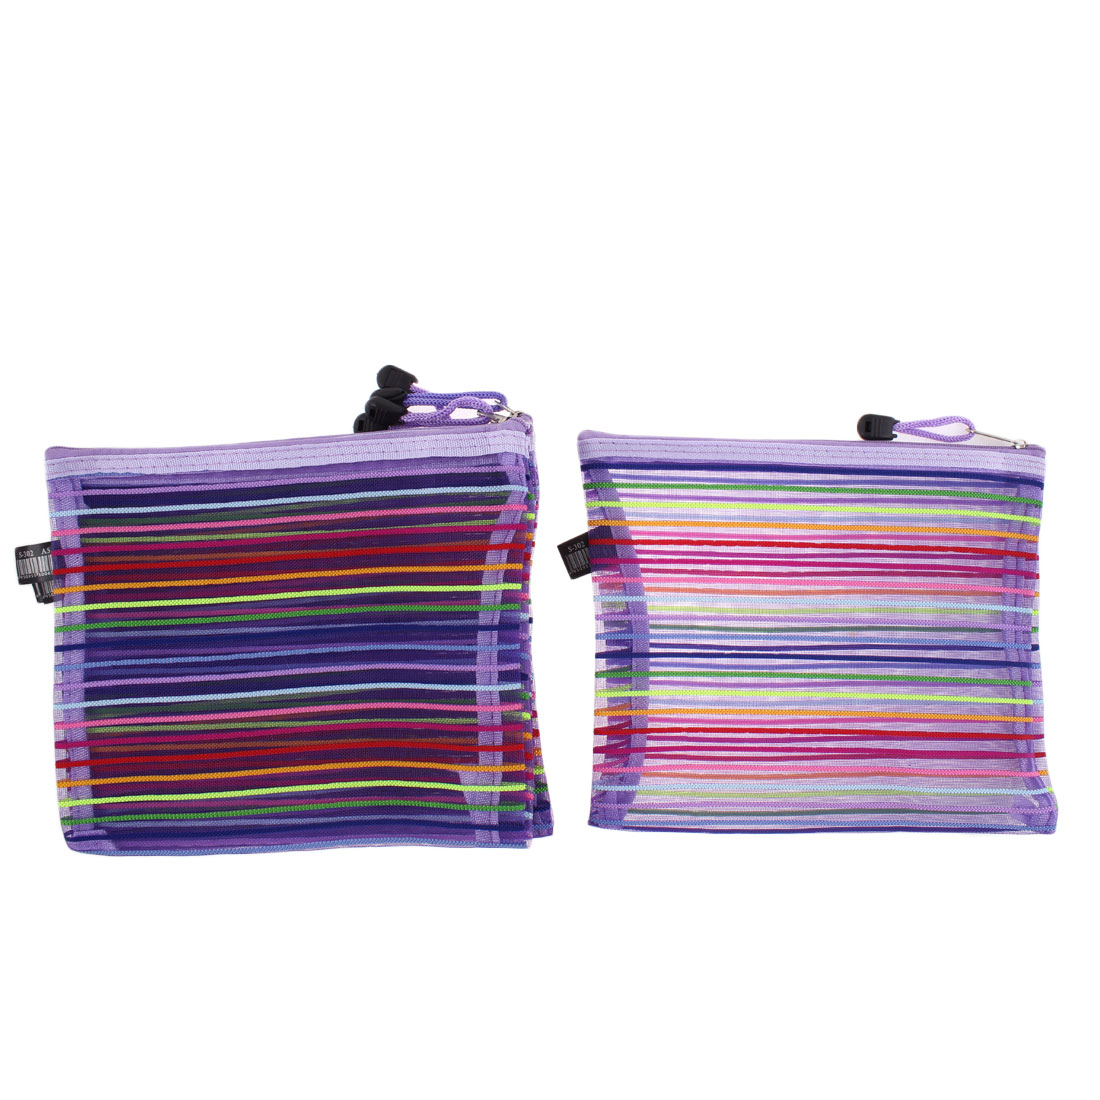 Meshy Style Stripes Pattern Zip Up A5 Paper Document File Pen Bags Holder 5 Pcs